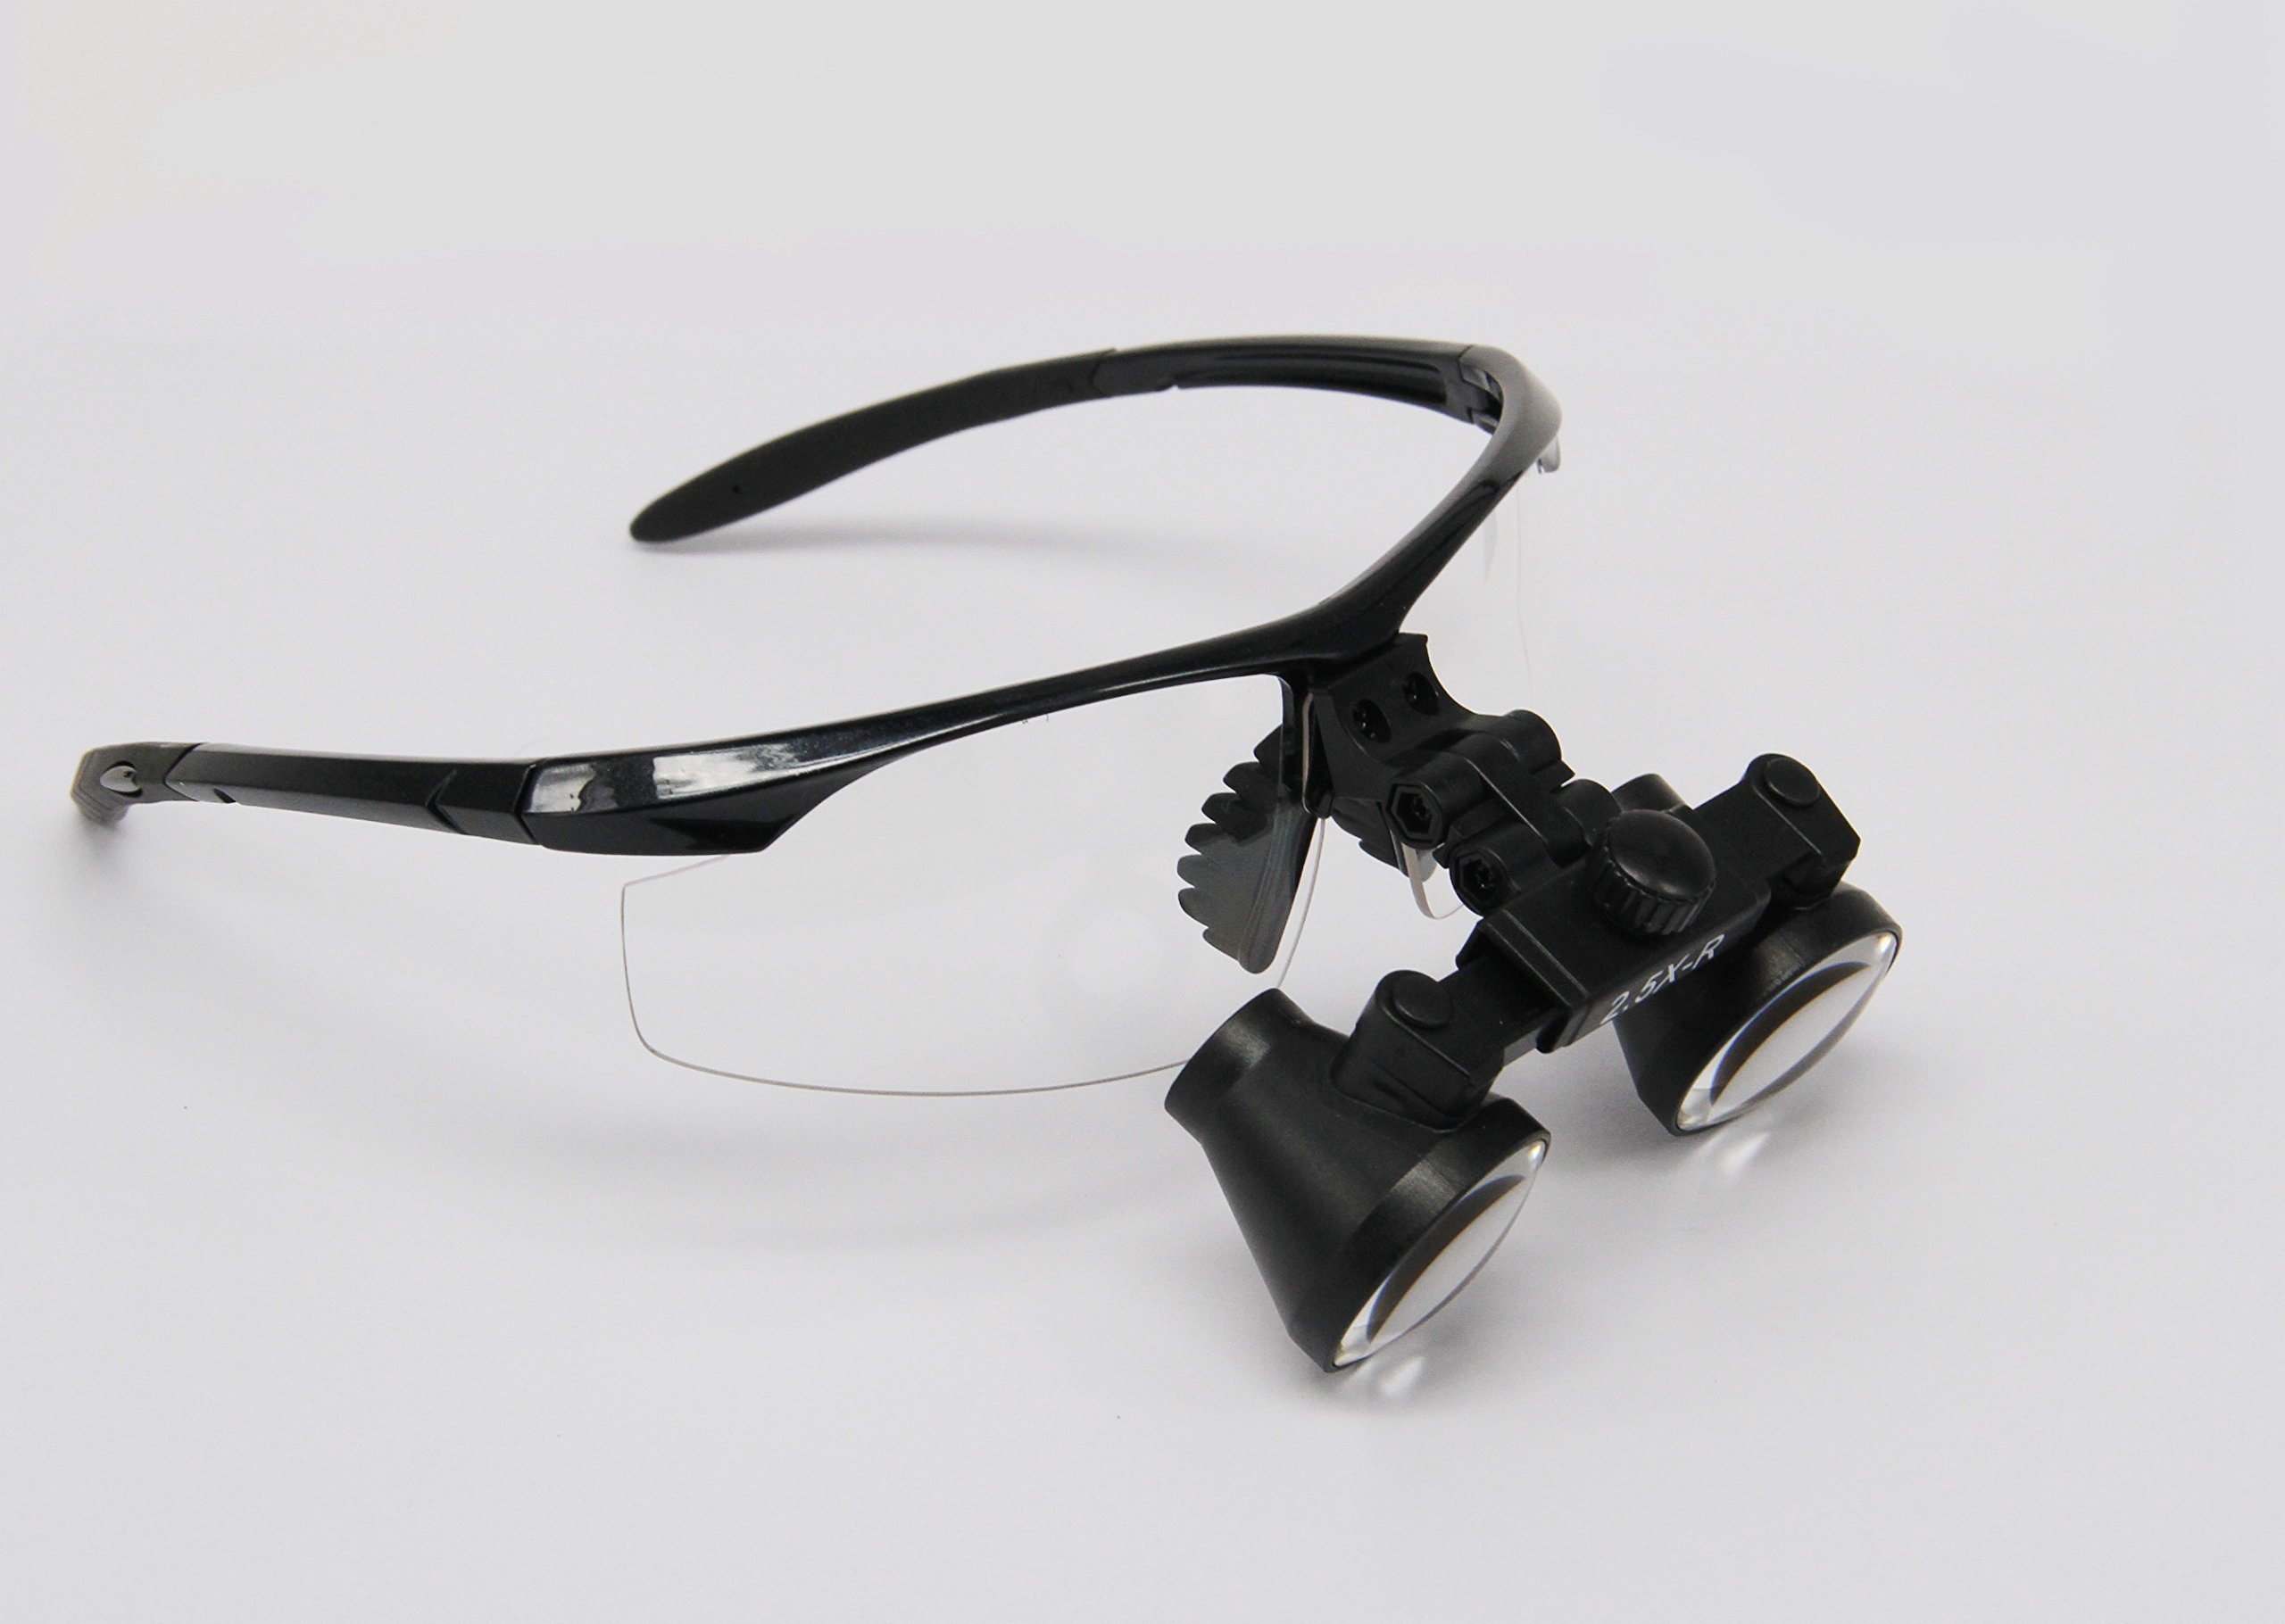 Ymarda Optics most popular 2.5X Binocular Loupes Surgical Loupes (Black frame 2.5x Magnifier with different working distances) (R (360-460mm) with Black frame)